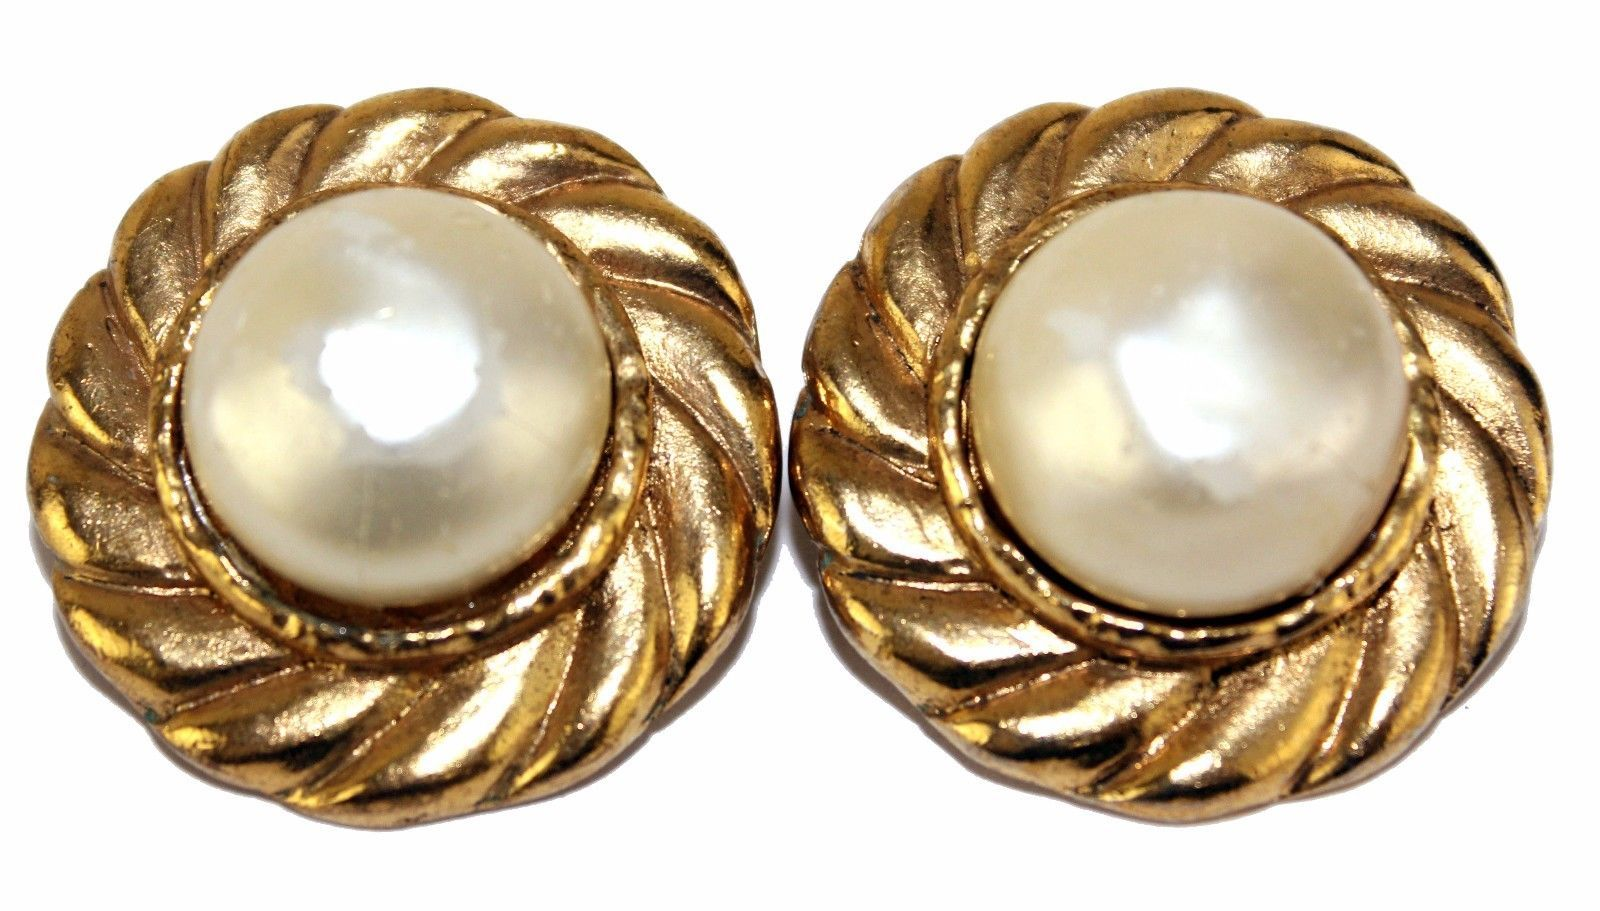 e24a950e713 100% Auth CHANEL Gold Tone Clip-on Earring Ear Ring with Pearl France  Vintage - £174.34 GBP · Advanced search for Chanel Brooch